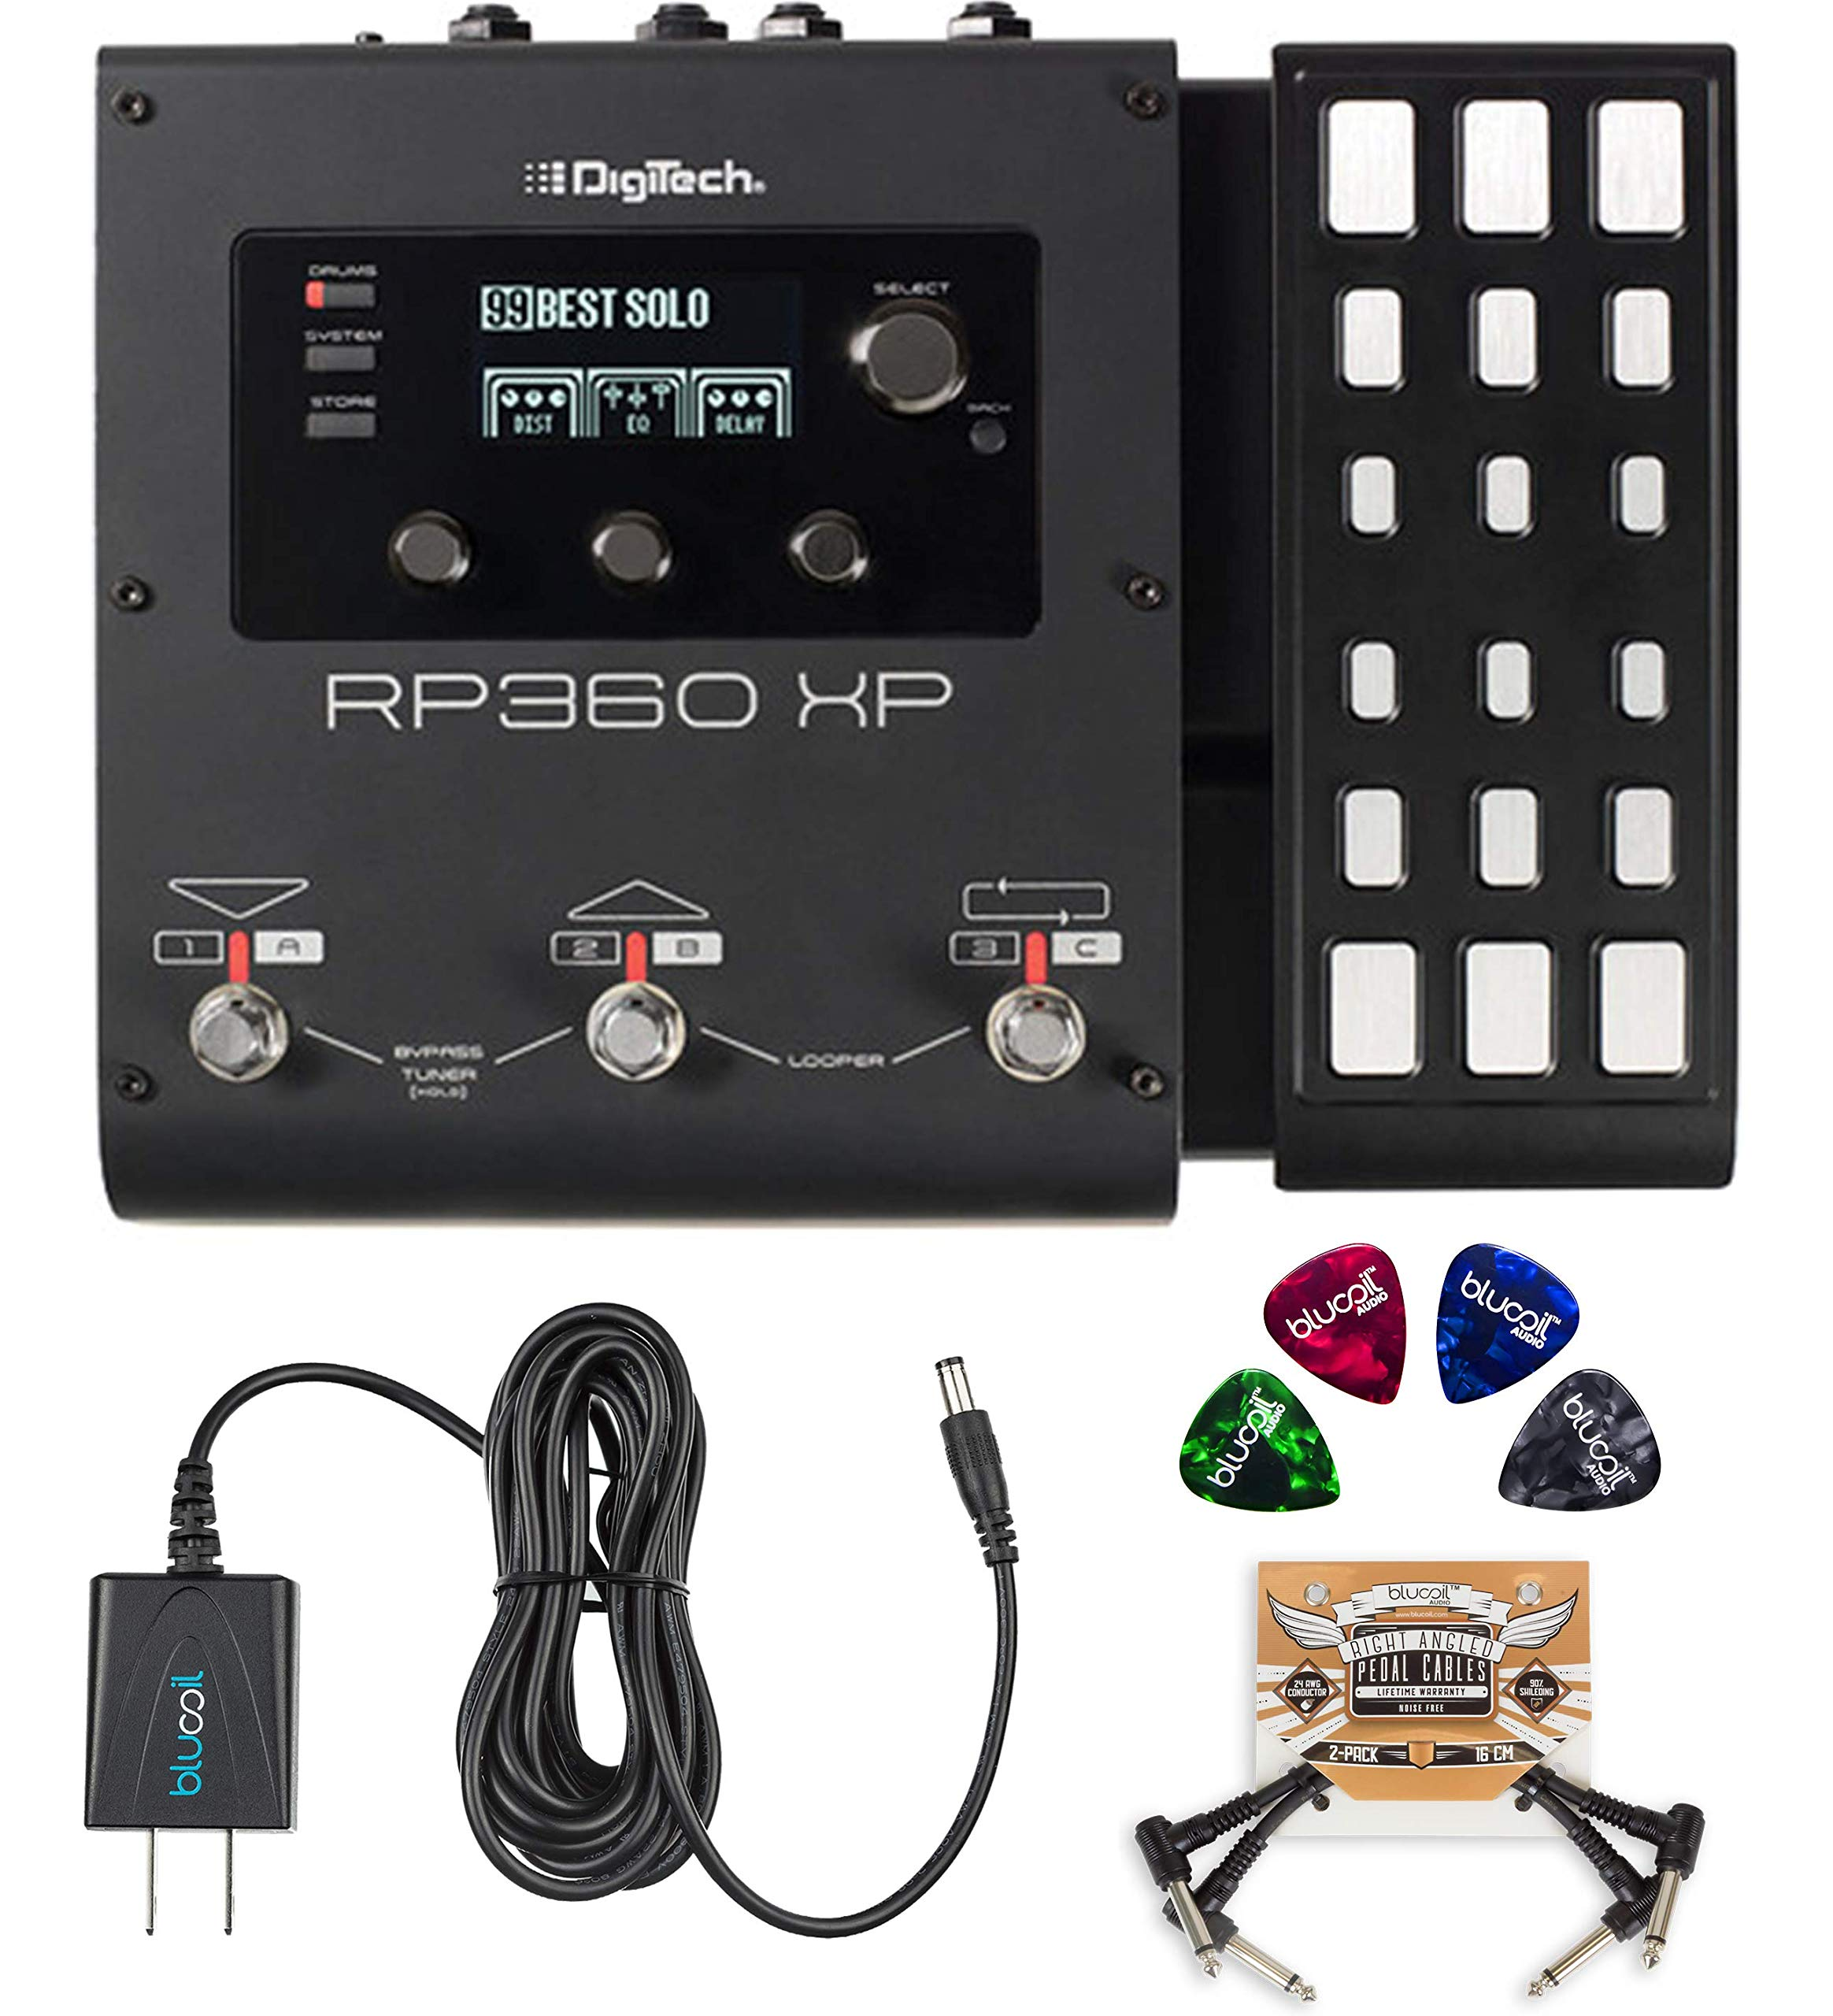 DigiTech RP360XP Multi-Effects Processor with Expression Pedal Bundle with Blucoil 9V AC Adapter, 2x Patch Cables and 4x Celluloid Guitar Picks